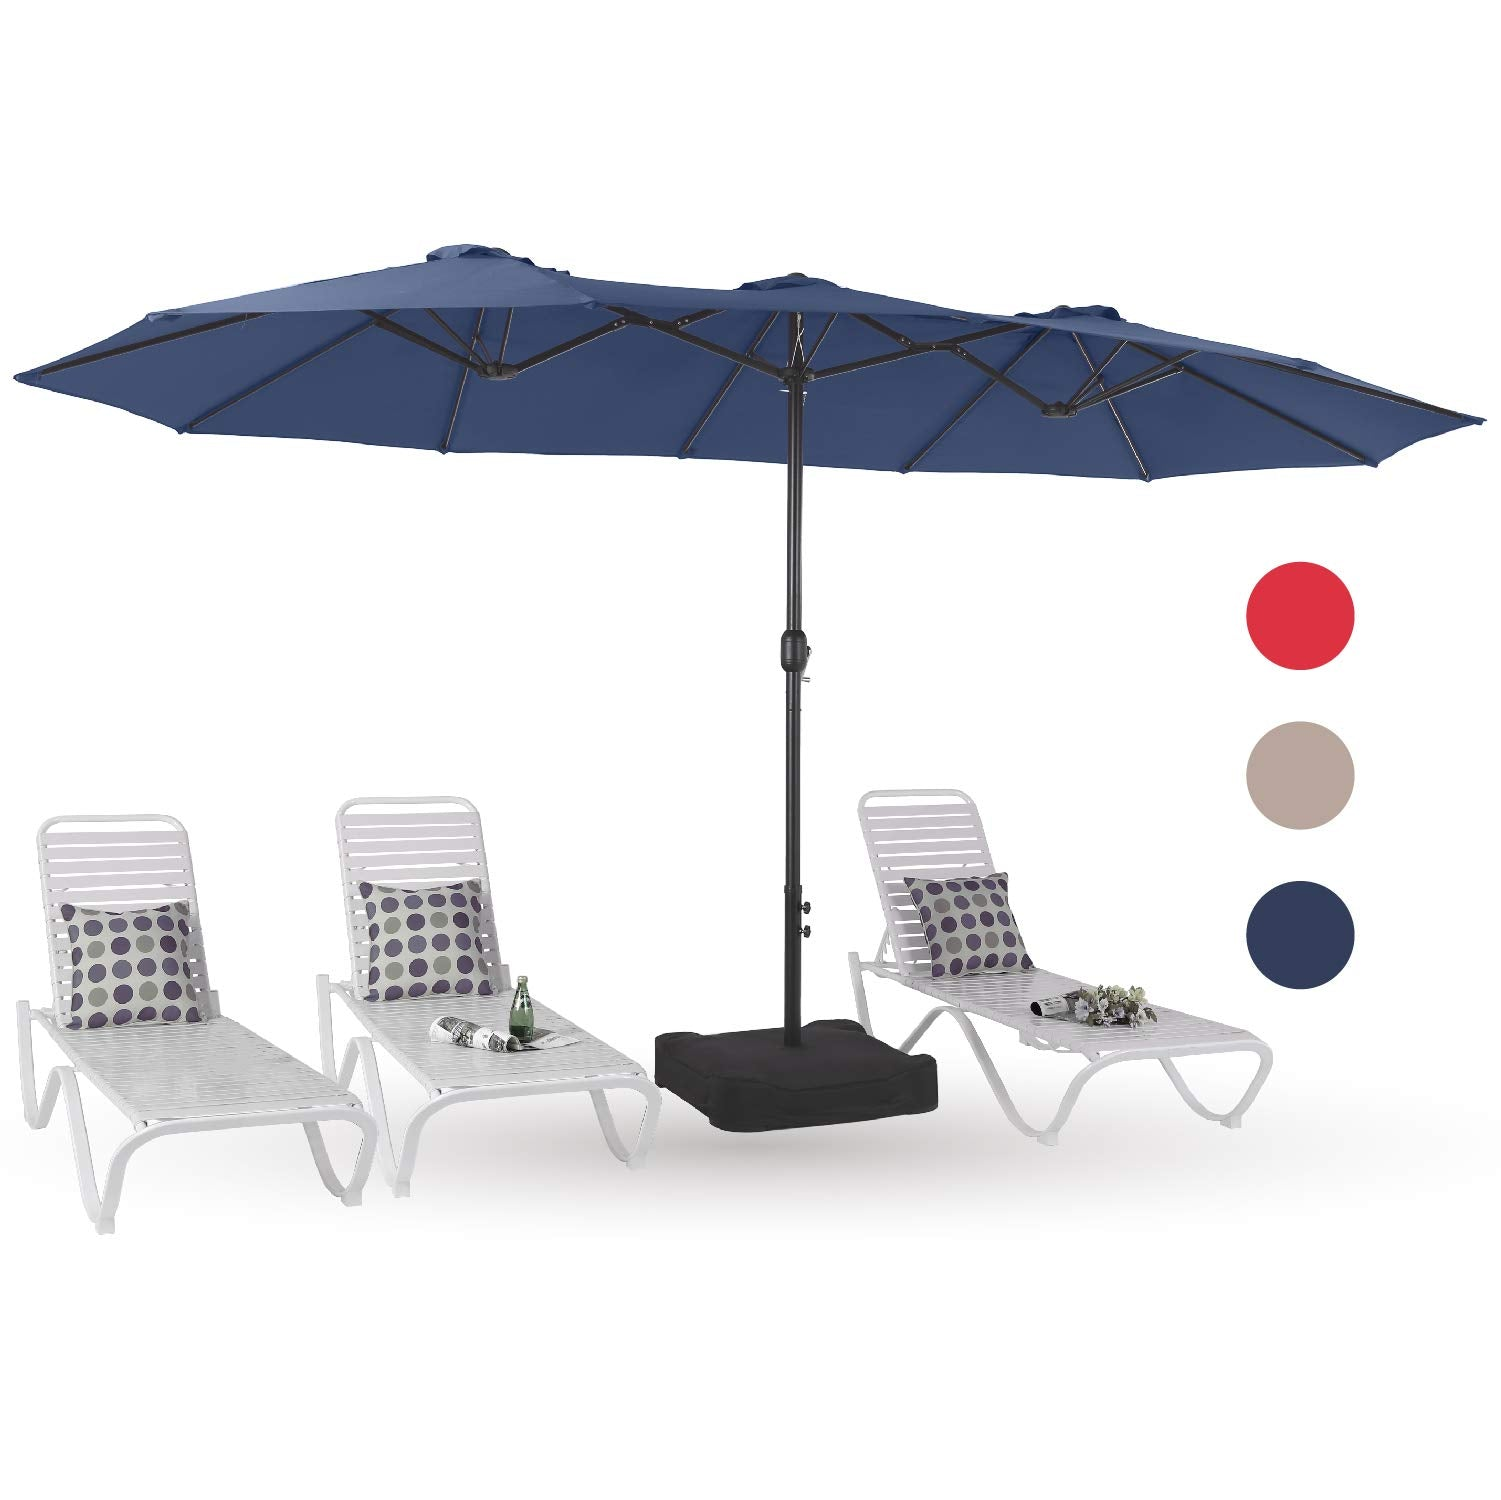 Alphamarts coupon: PHI VILLA 15ft Double-Sided Extra Large Patio Twin Umbrella Navy